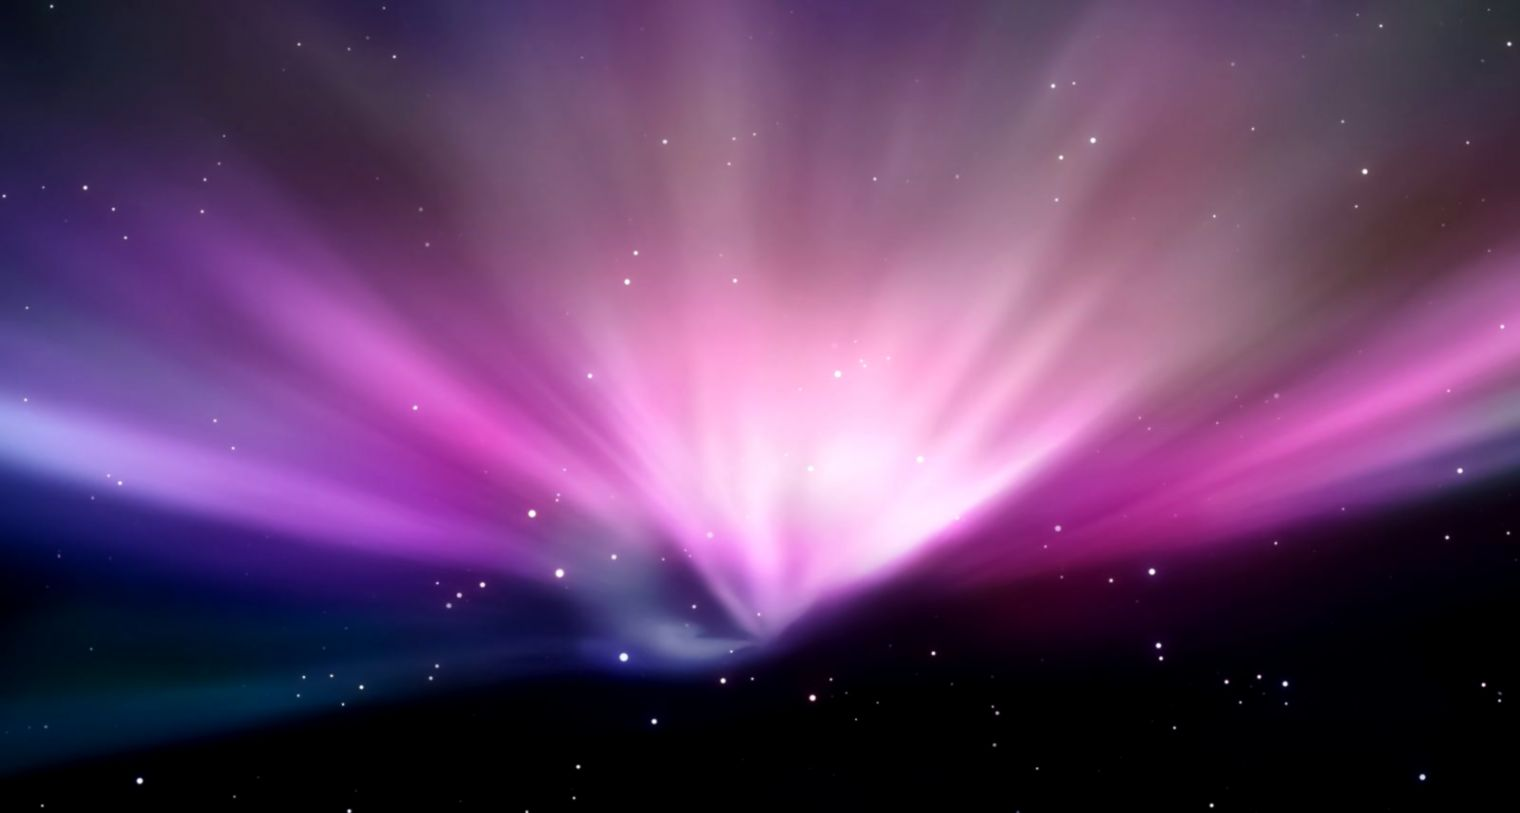 Mac Os Wallpaper Wide Wallpapers